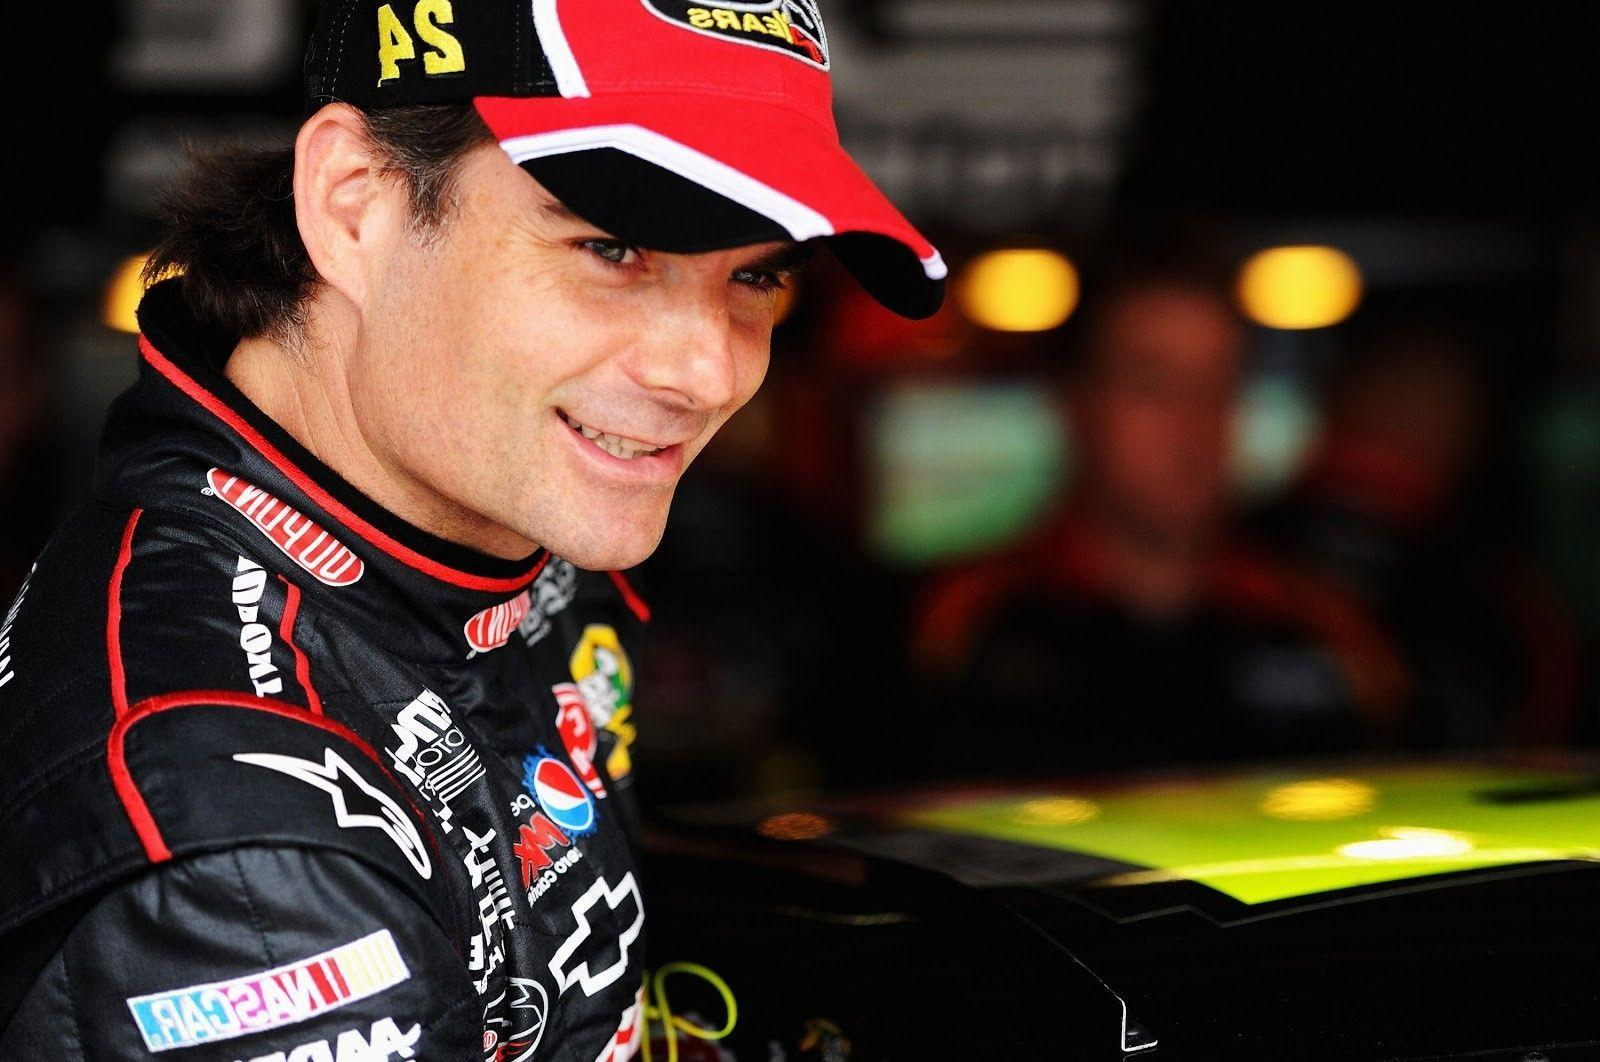 jeff gordon desktop wallpaper - photo #20